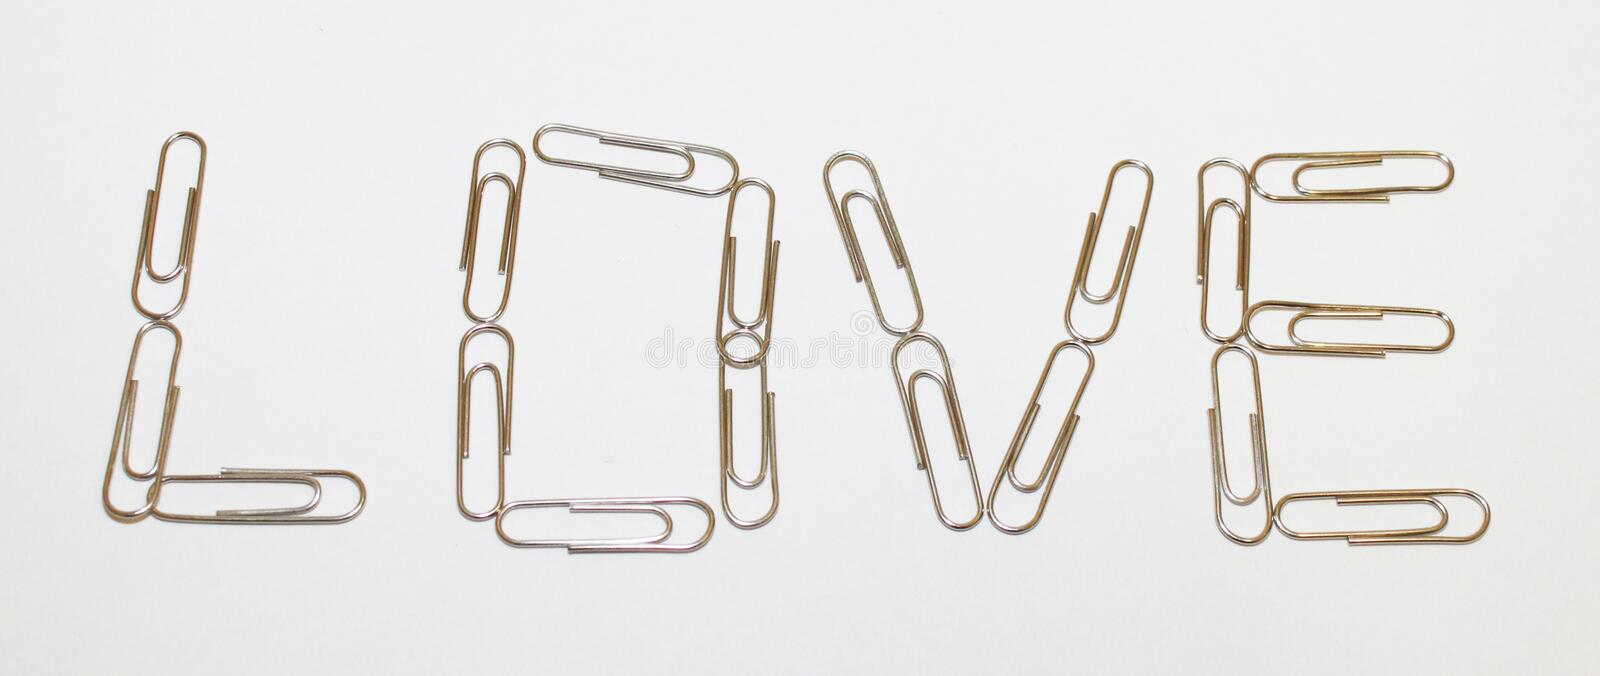 Download Love with paperclips stock image. Image of paperclips - 13480213